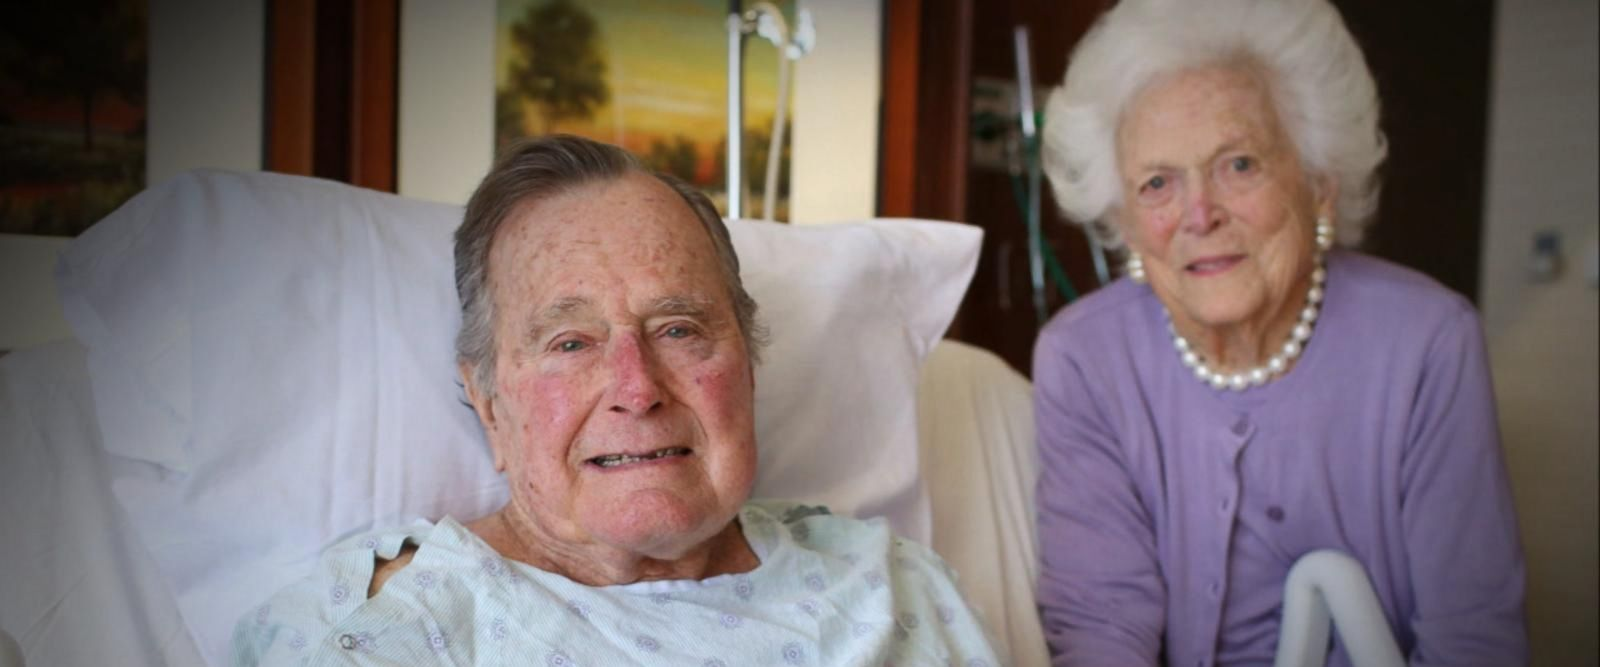 The Bushes' 72-year marriage is the longest of any presidential couple.